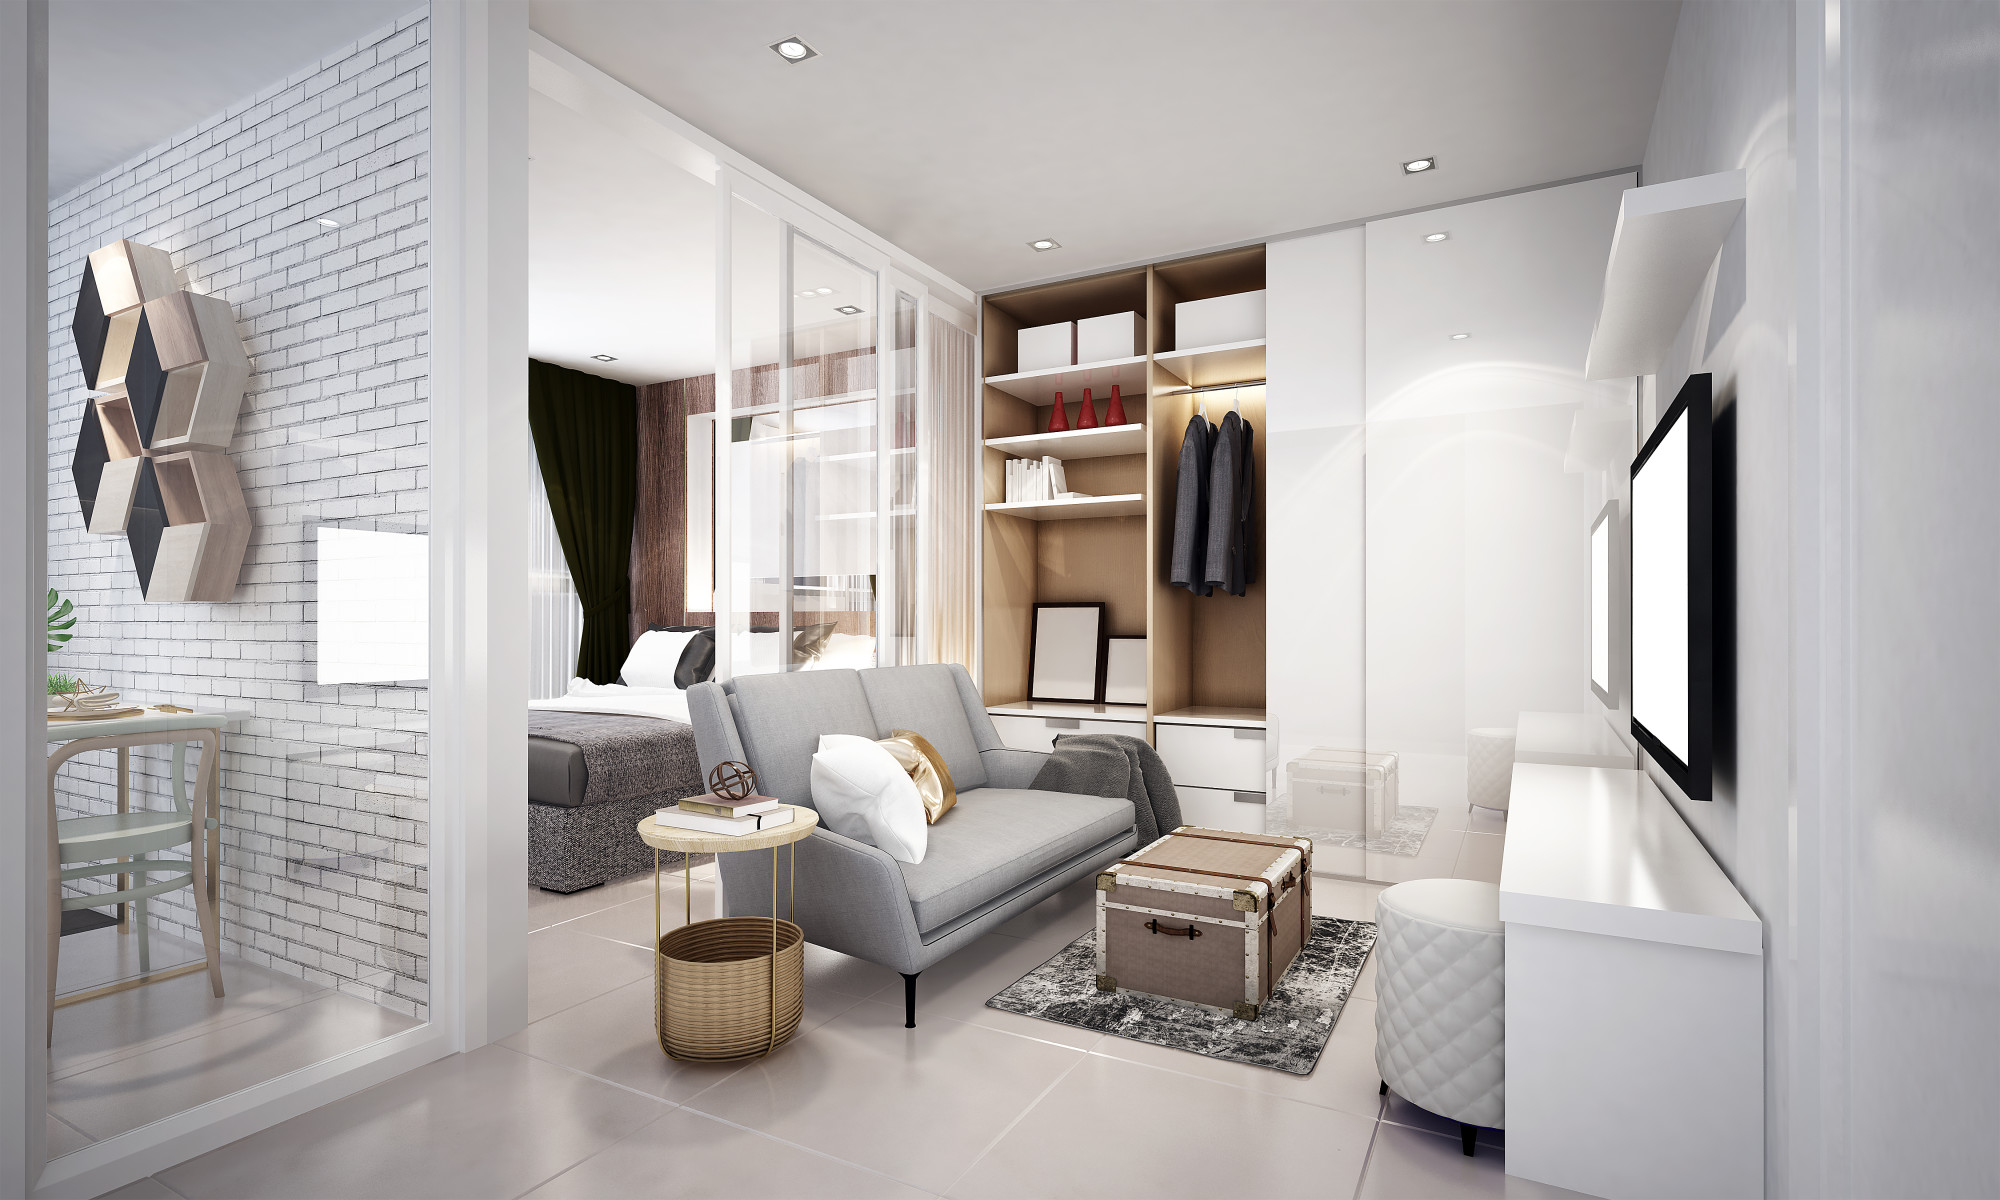 8 Effective Ways to Make the Most of Your Space in Small Apartments